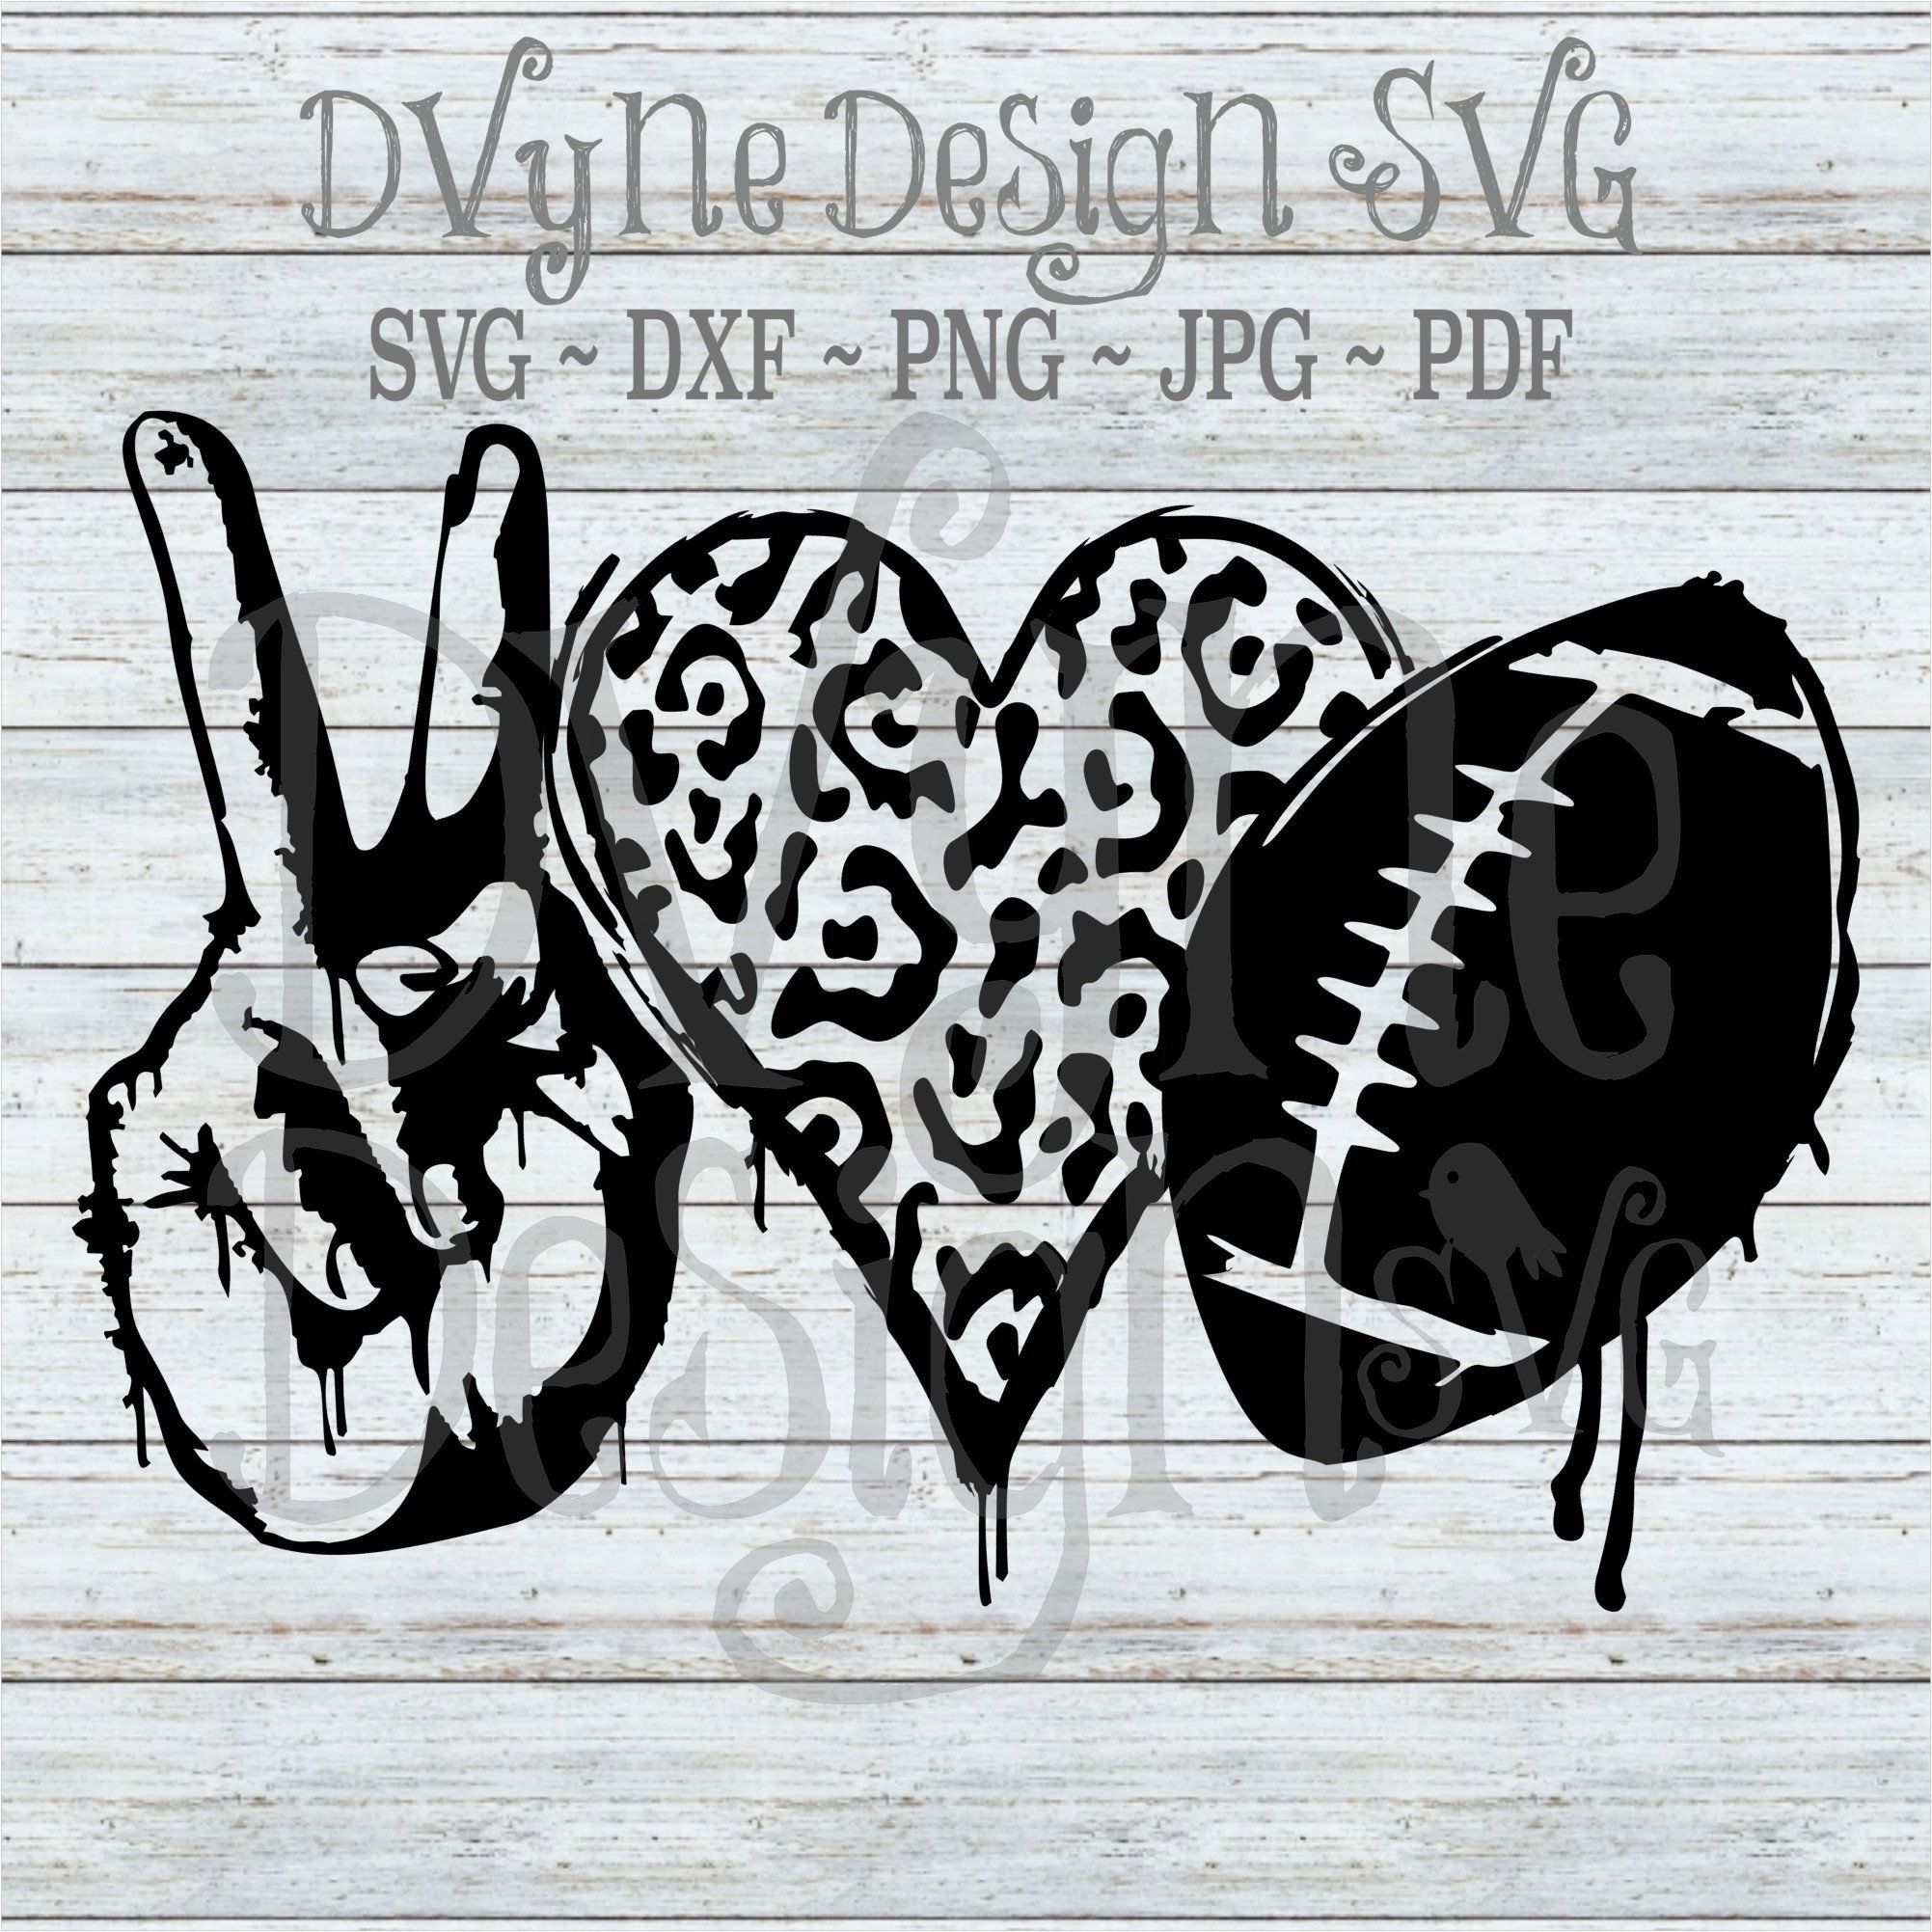 Peace Love Football Svg For Silhouette Or Cricut Grunge Peace Etsy In 2021 Peace And Love Svg Grunge